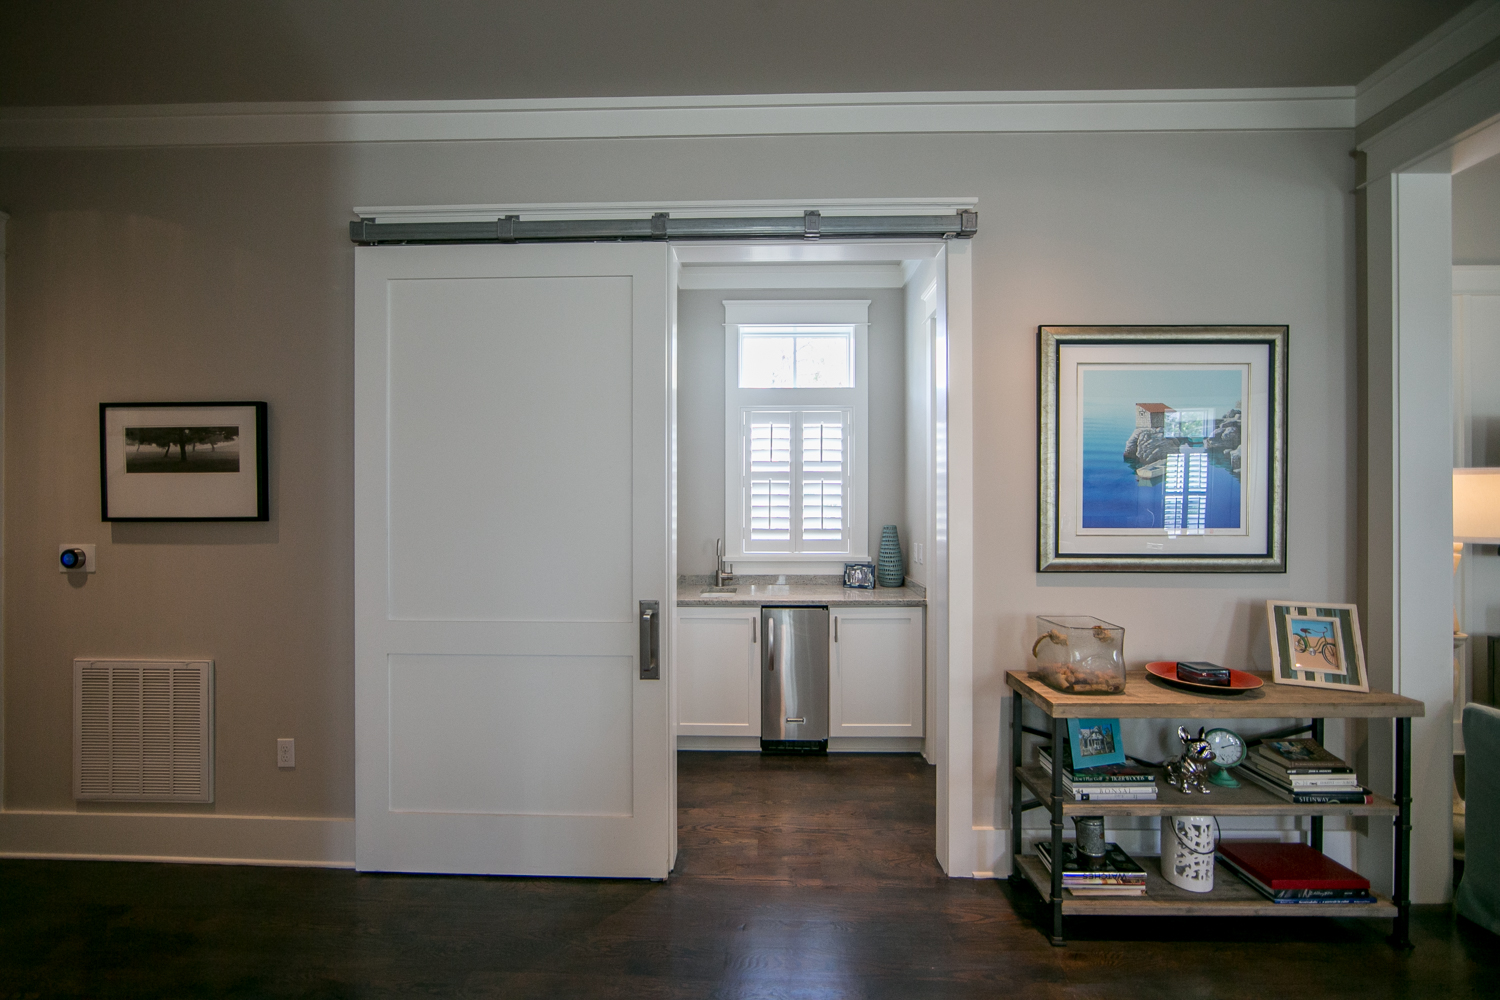 Large barn door encloses two pantry spaces and a wet bar and ice machine off to the side of the kitchen